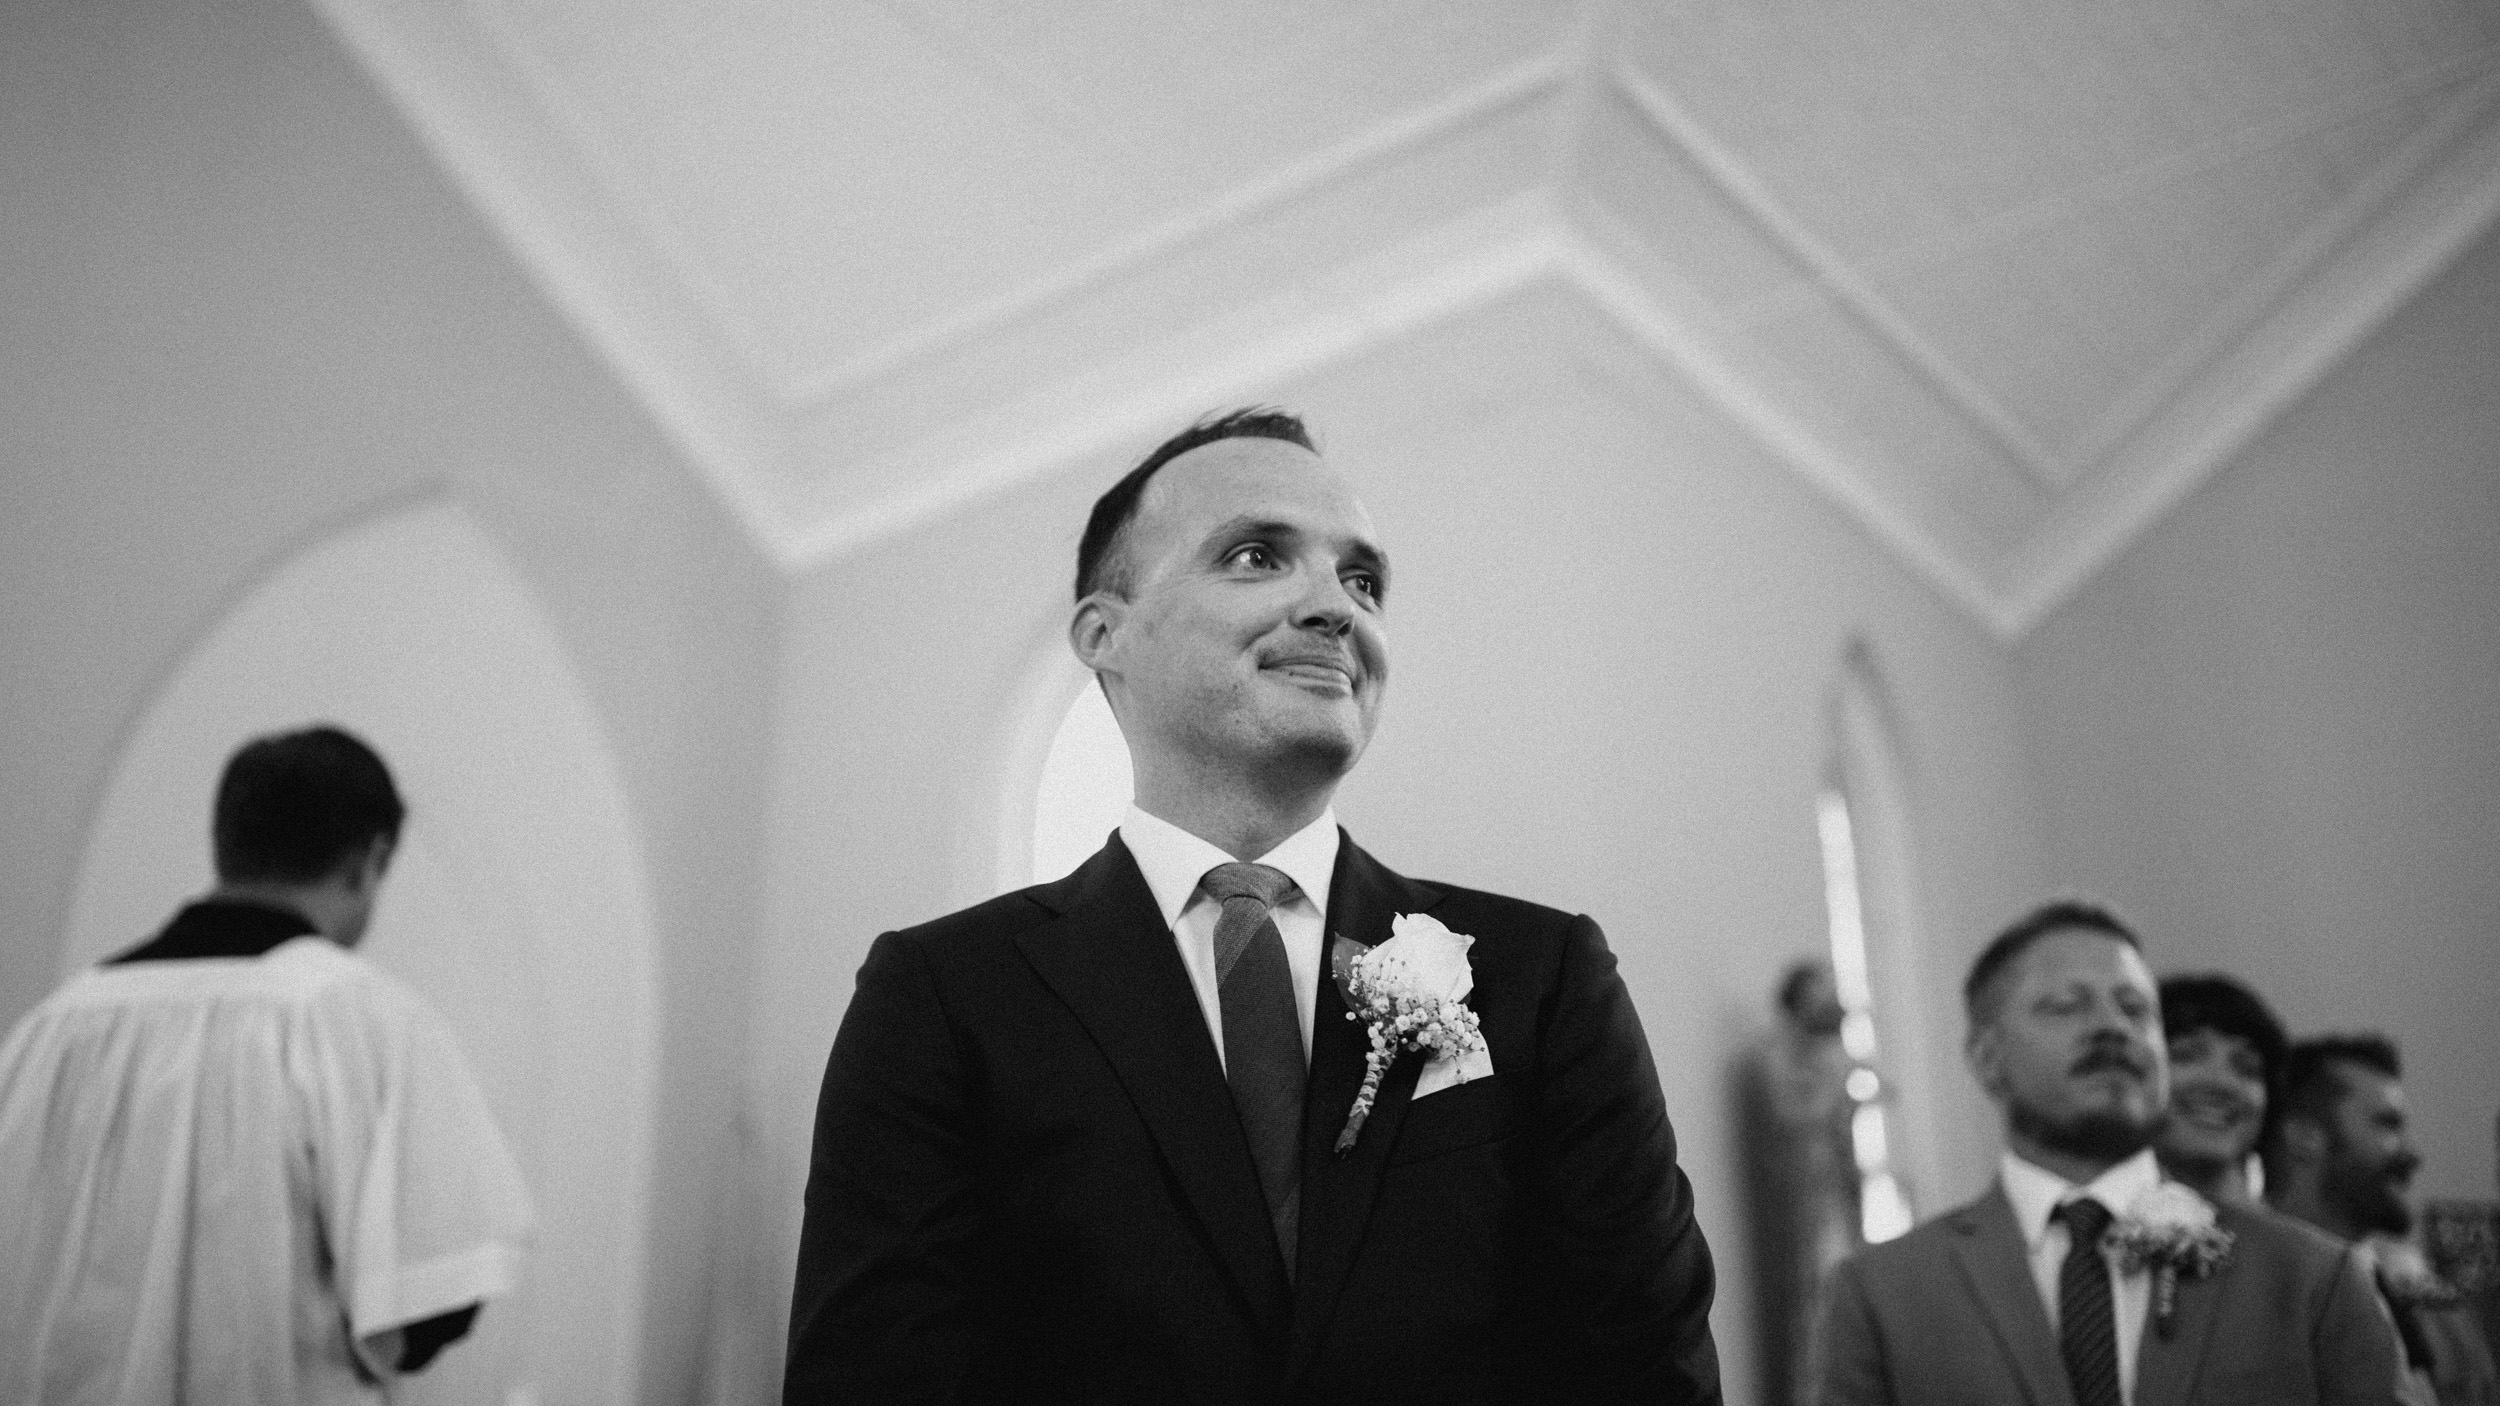 alec_vanderboom_john_micahel_lucy_kansas_city_wedding_photographer-0025.jpg